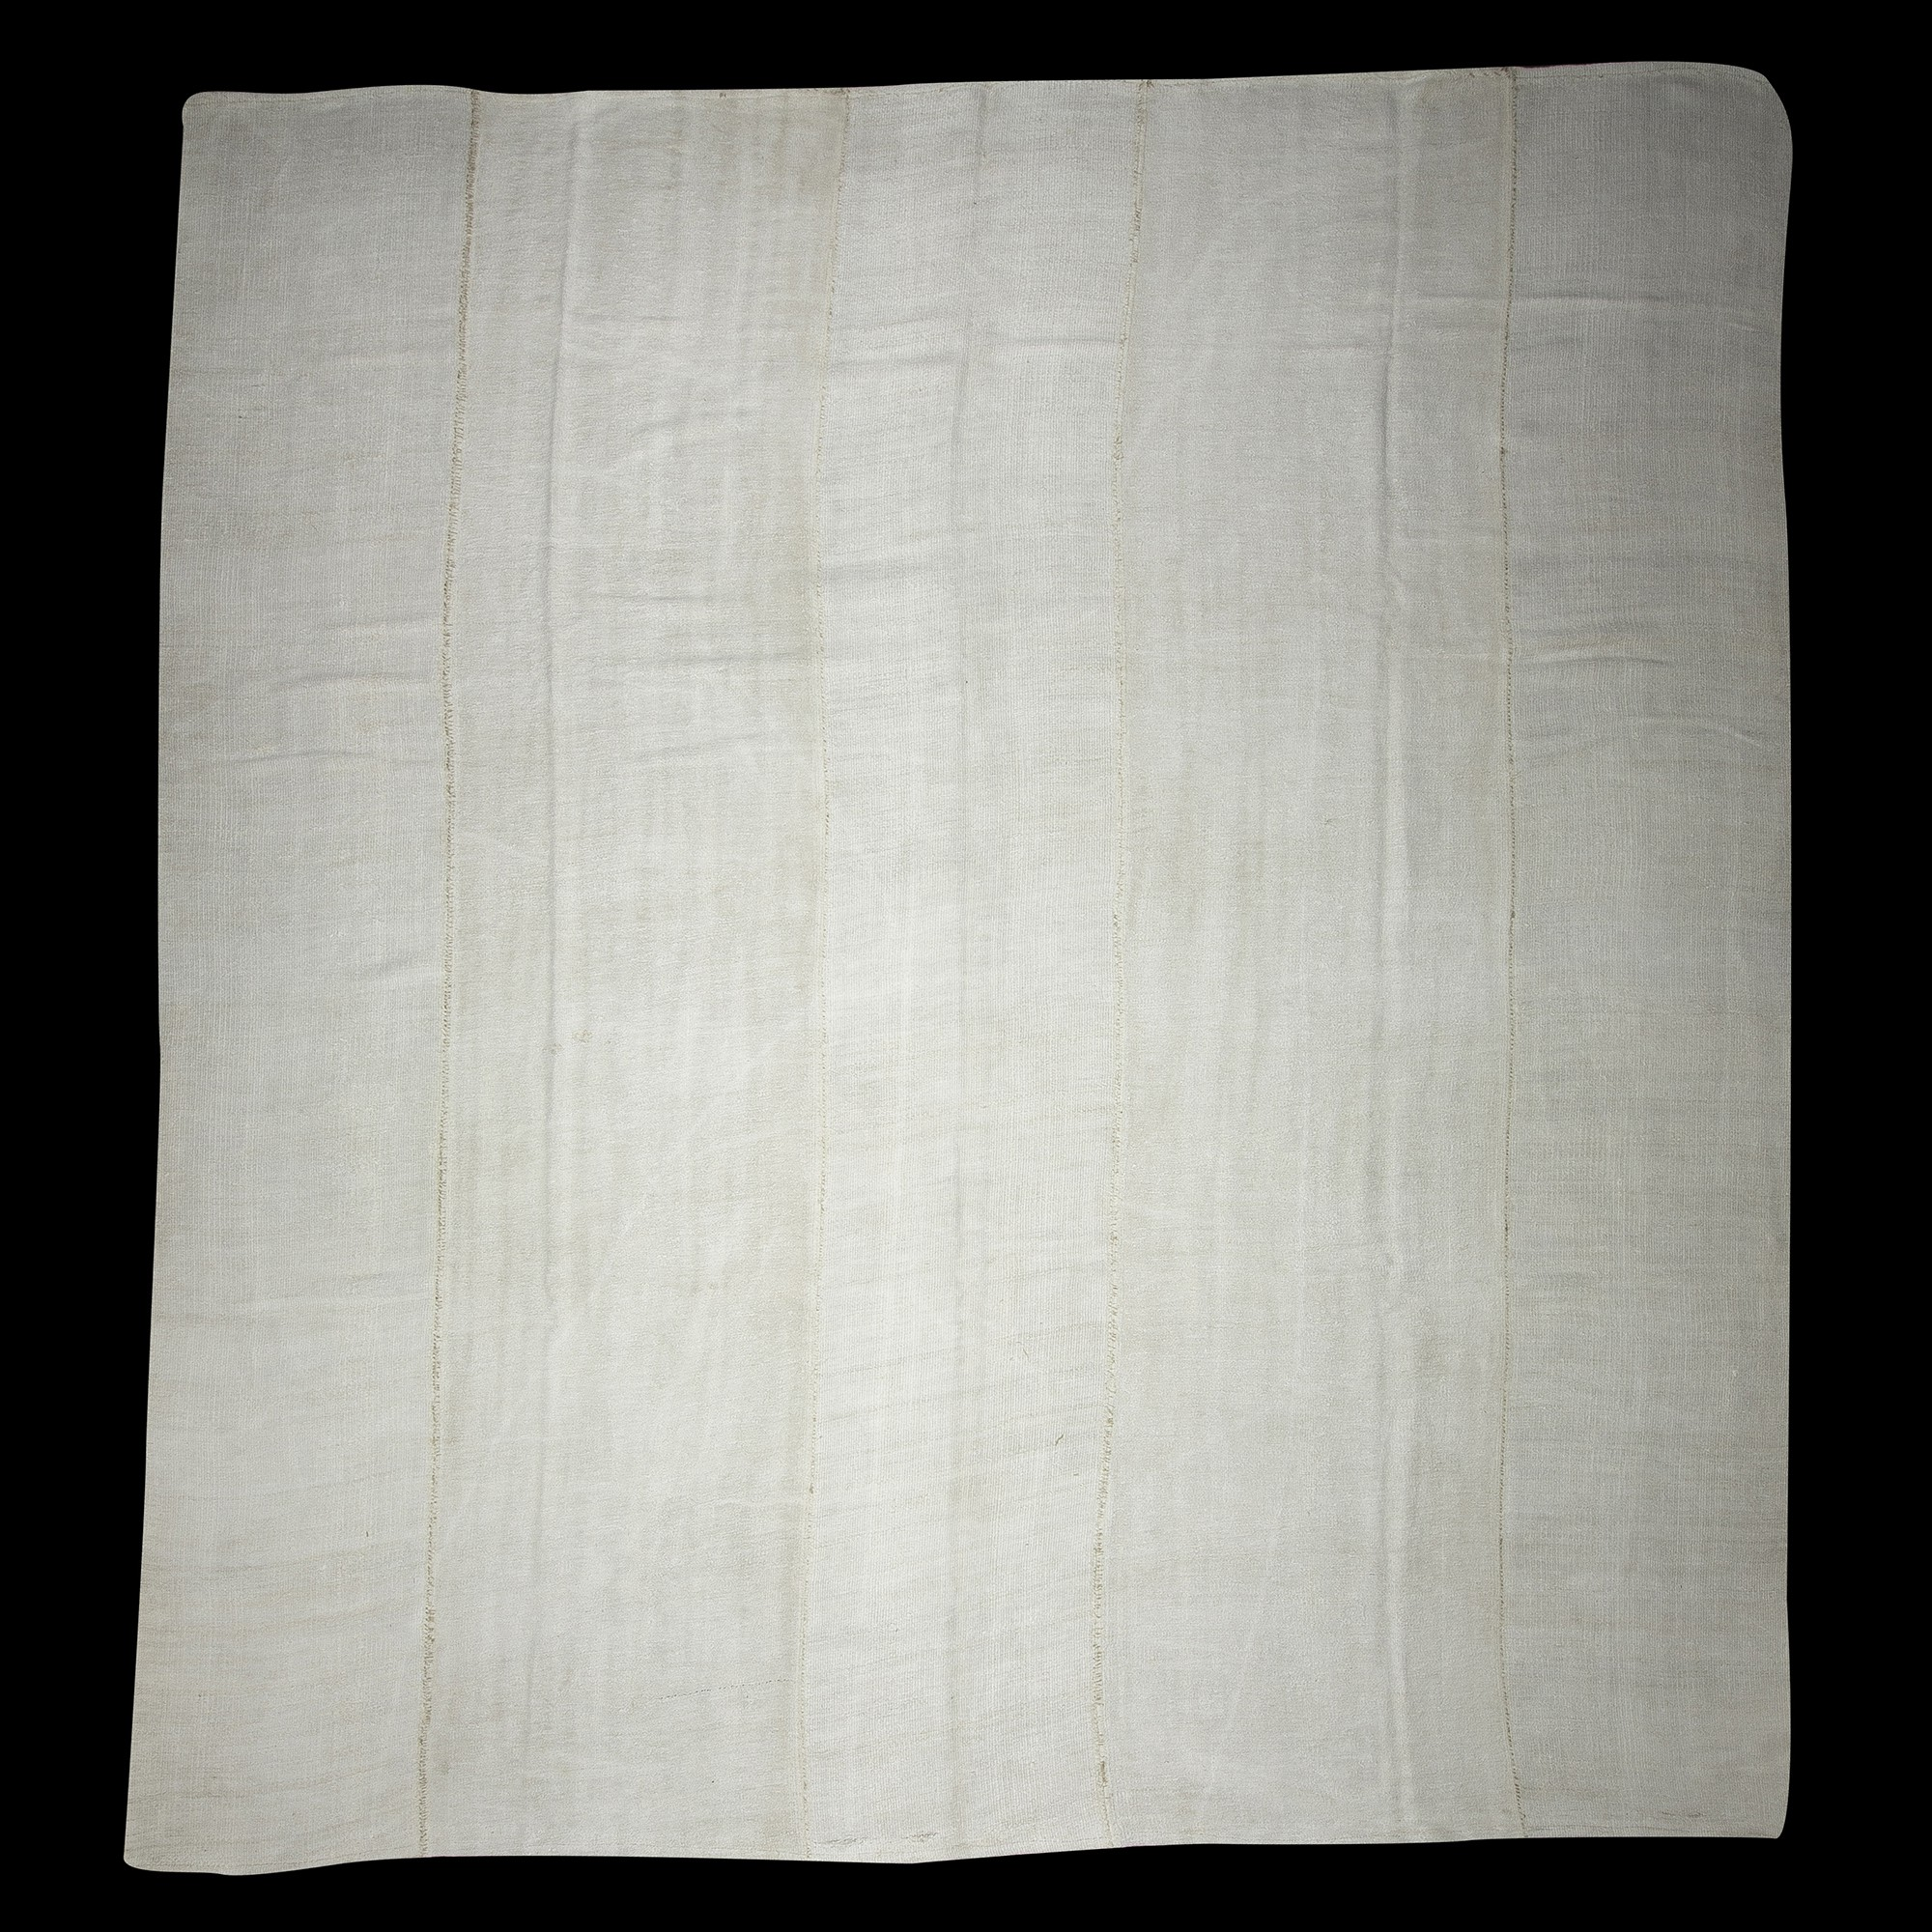 Oversized White Hemp Rug 11x12 Feet 345,375 - Turkish Hemp Rug